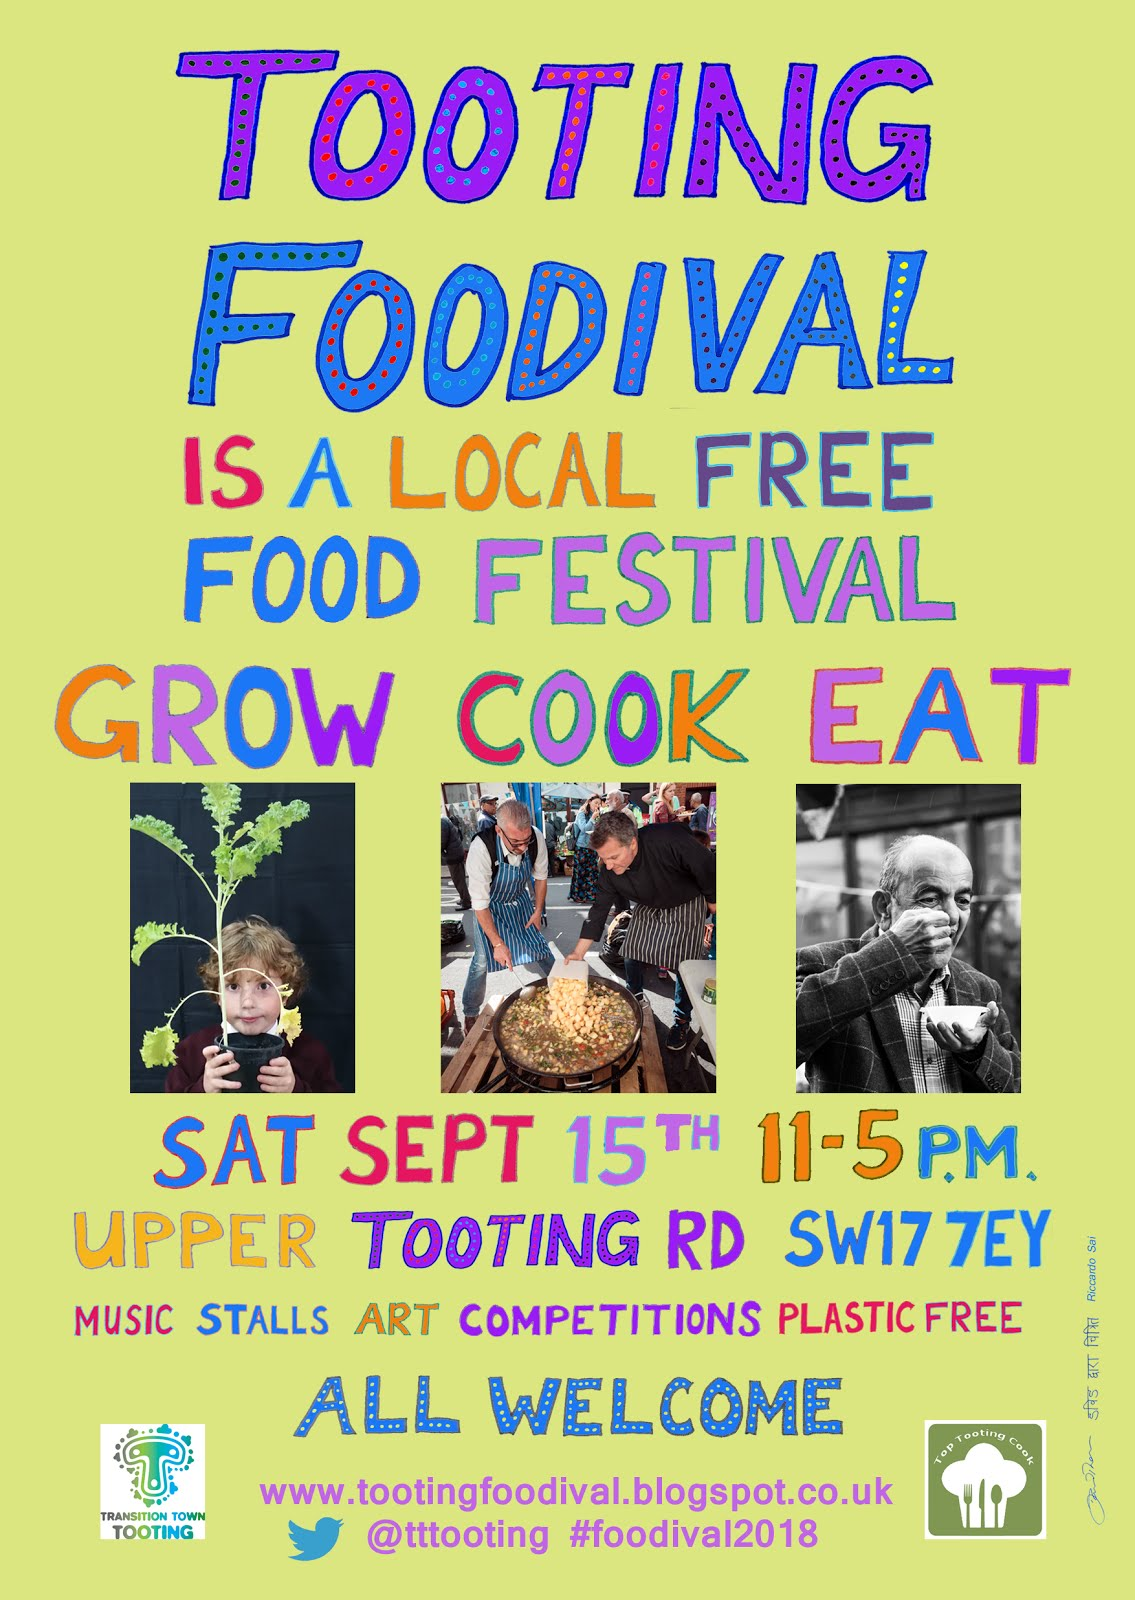 Saturday Sept 15th: the annual Tooting Foodival is here again!